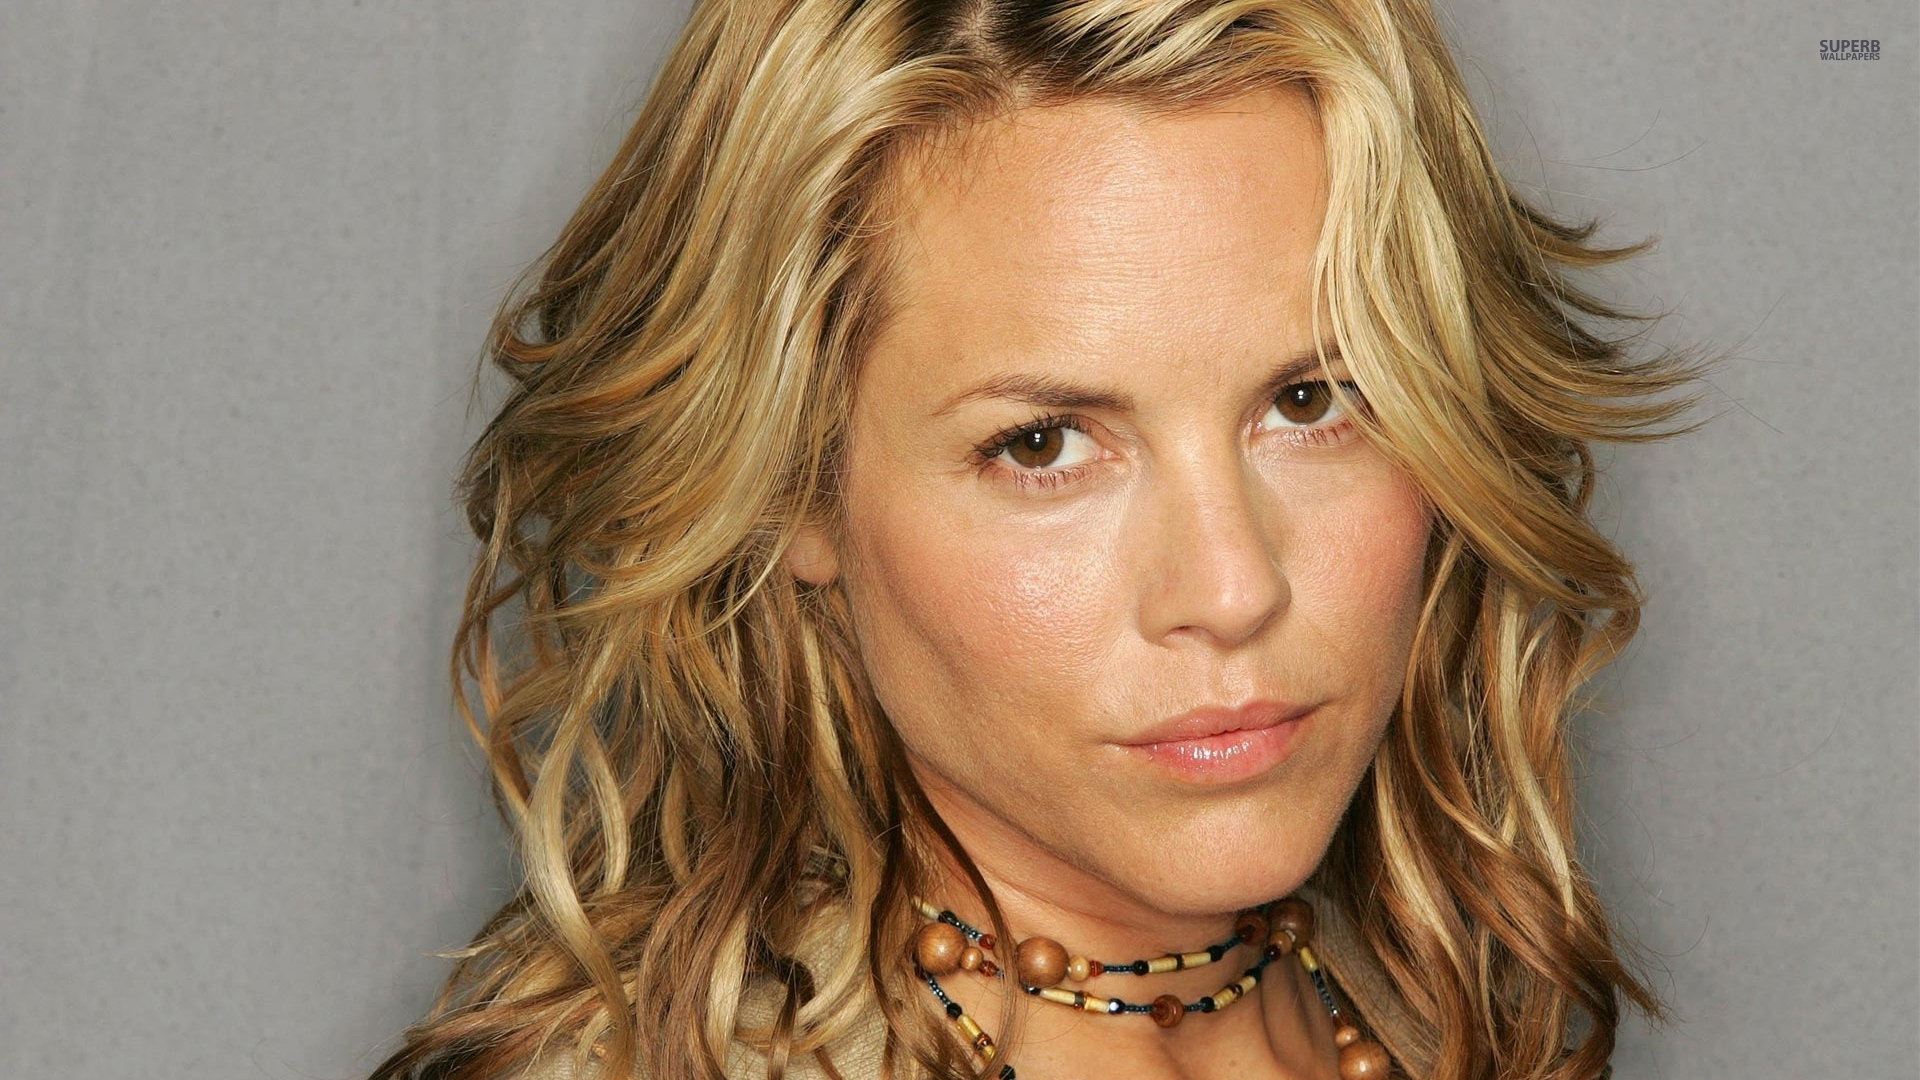 Urban Wallpaper Hd Maria Bello Wallpapers High Quality Download Free